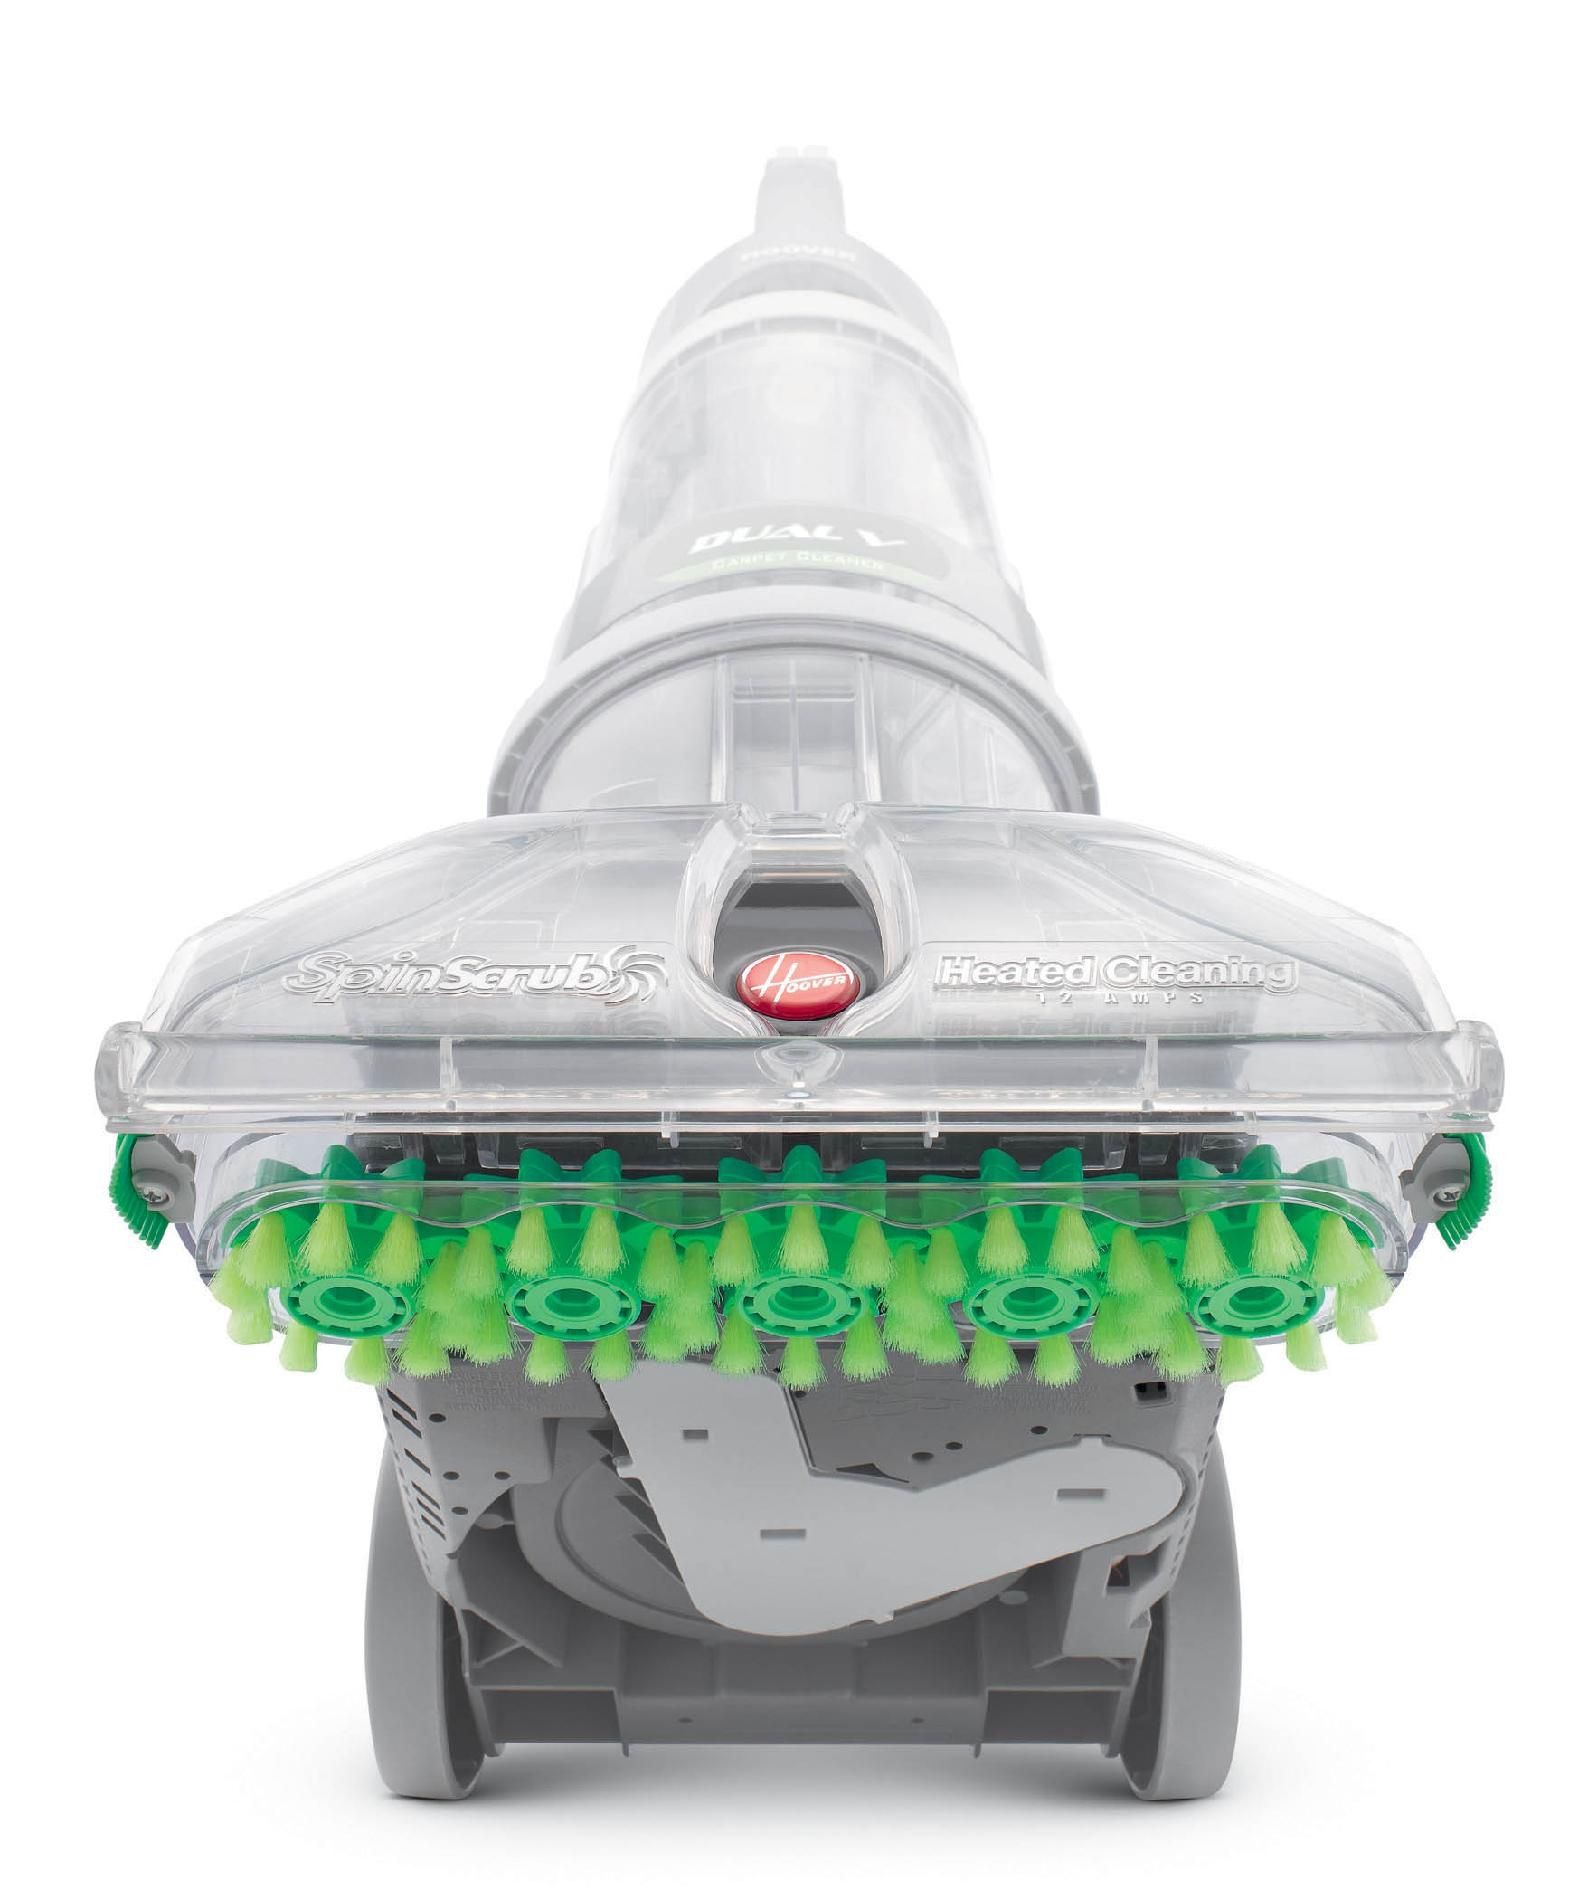 Hoover Upright Carpet Cleaner